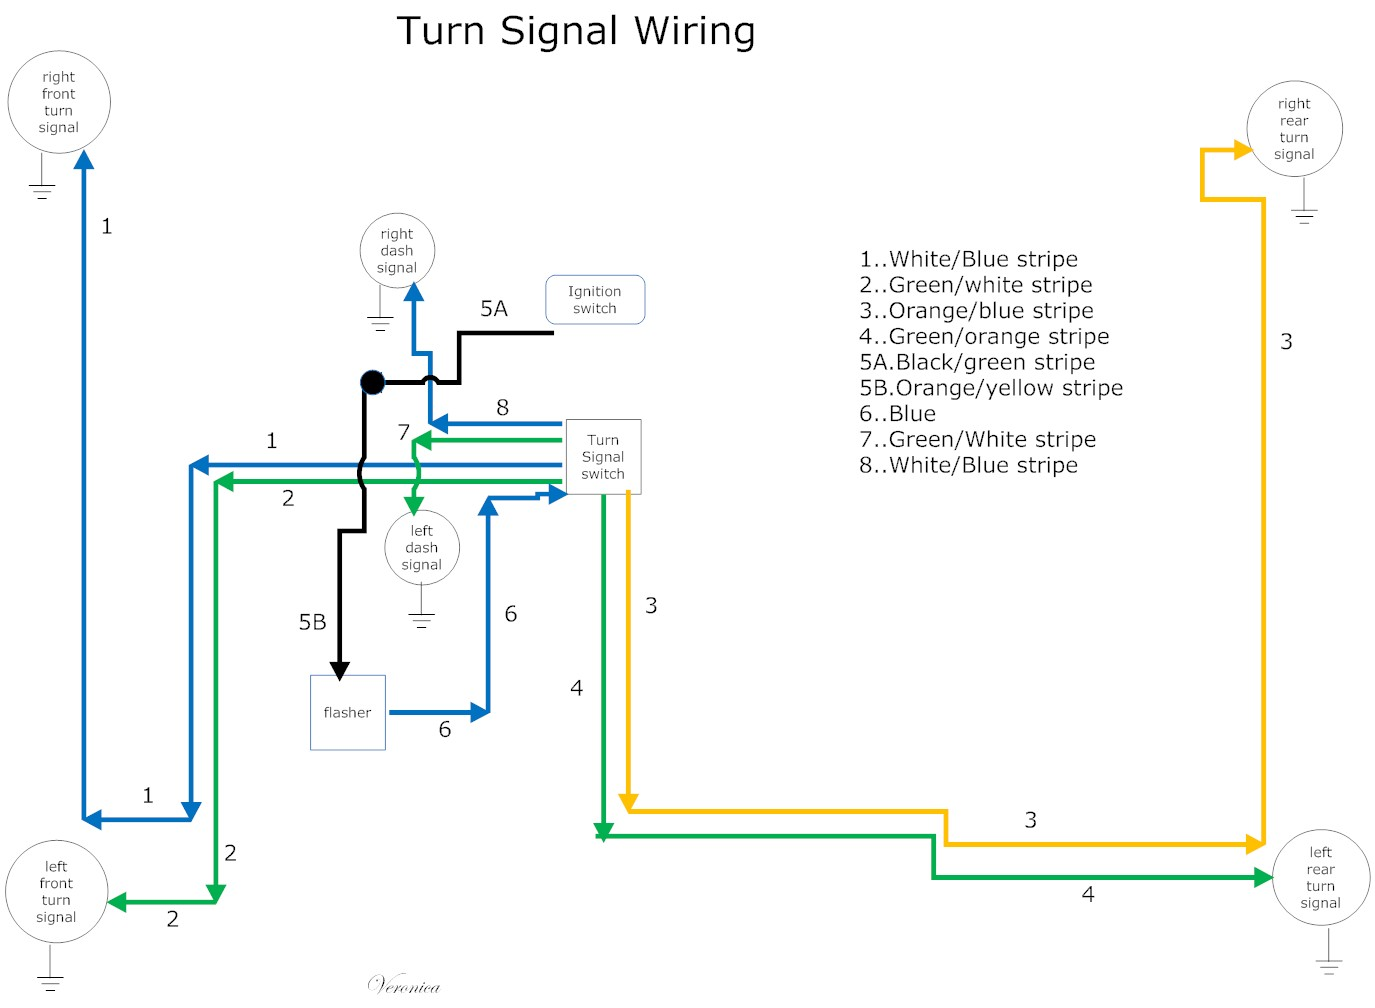 hight resolution of harley davidson turn signal wiring diagram 11 14 tridonicsignage de u2022